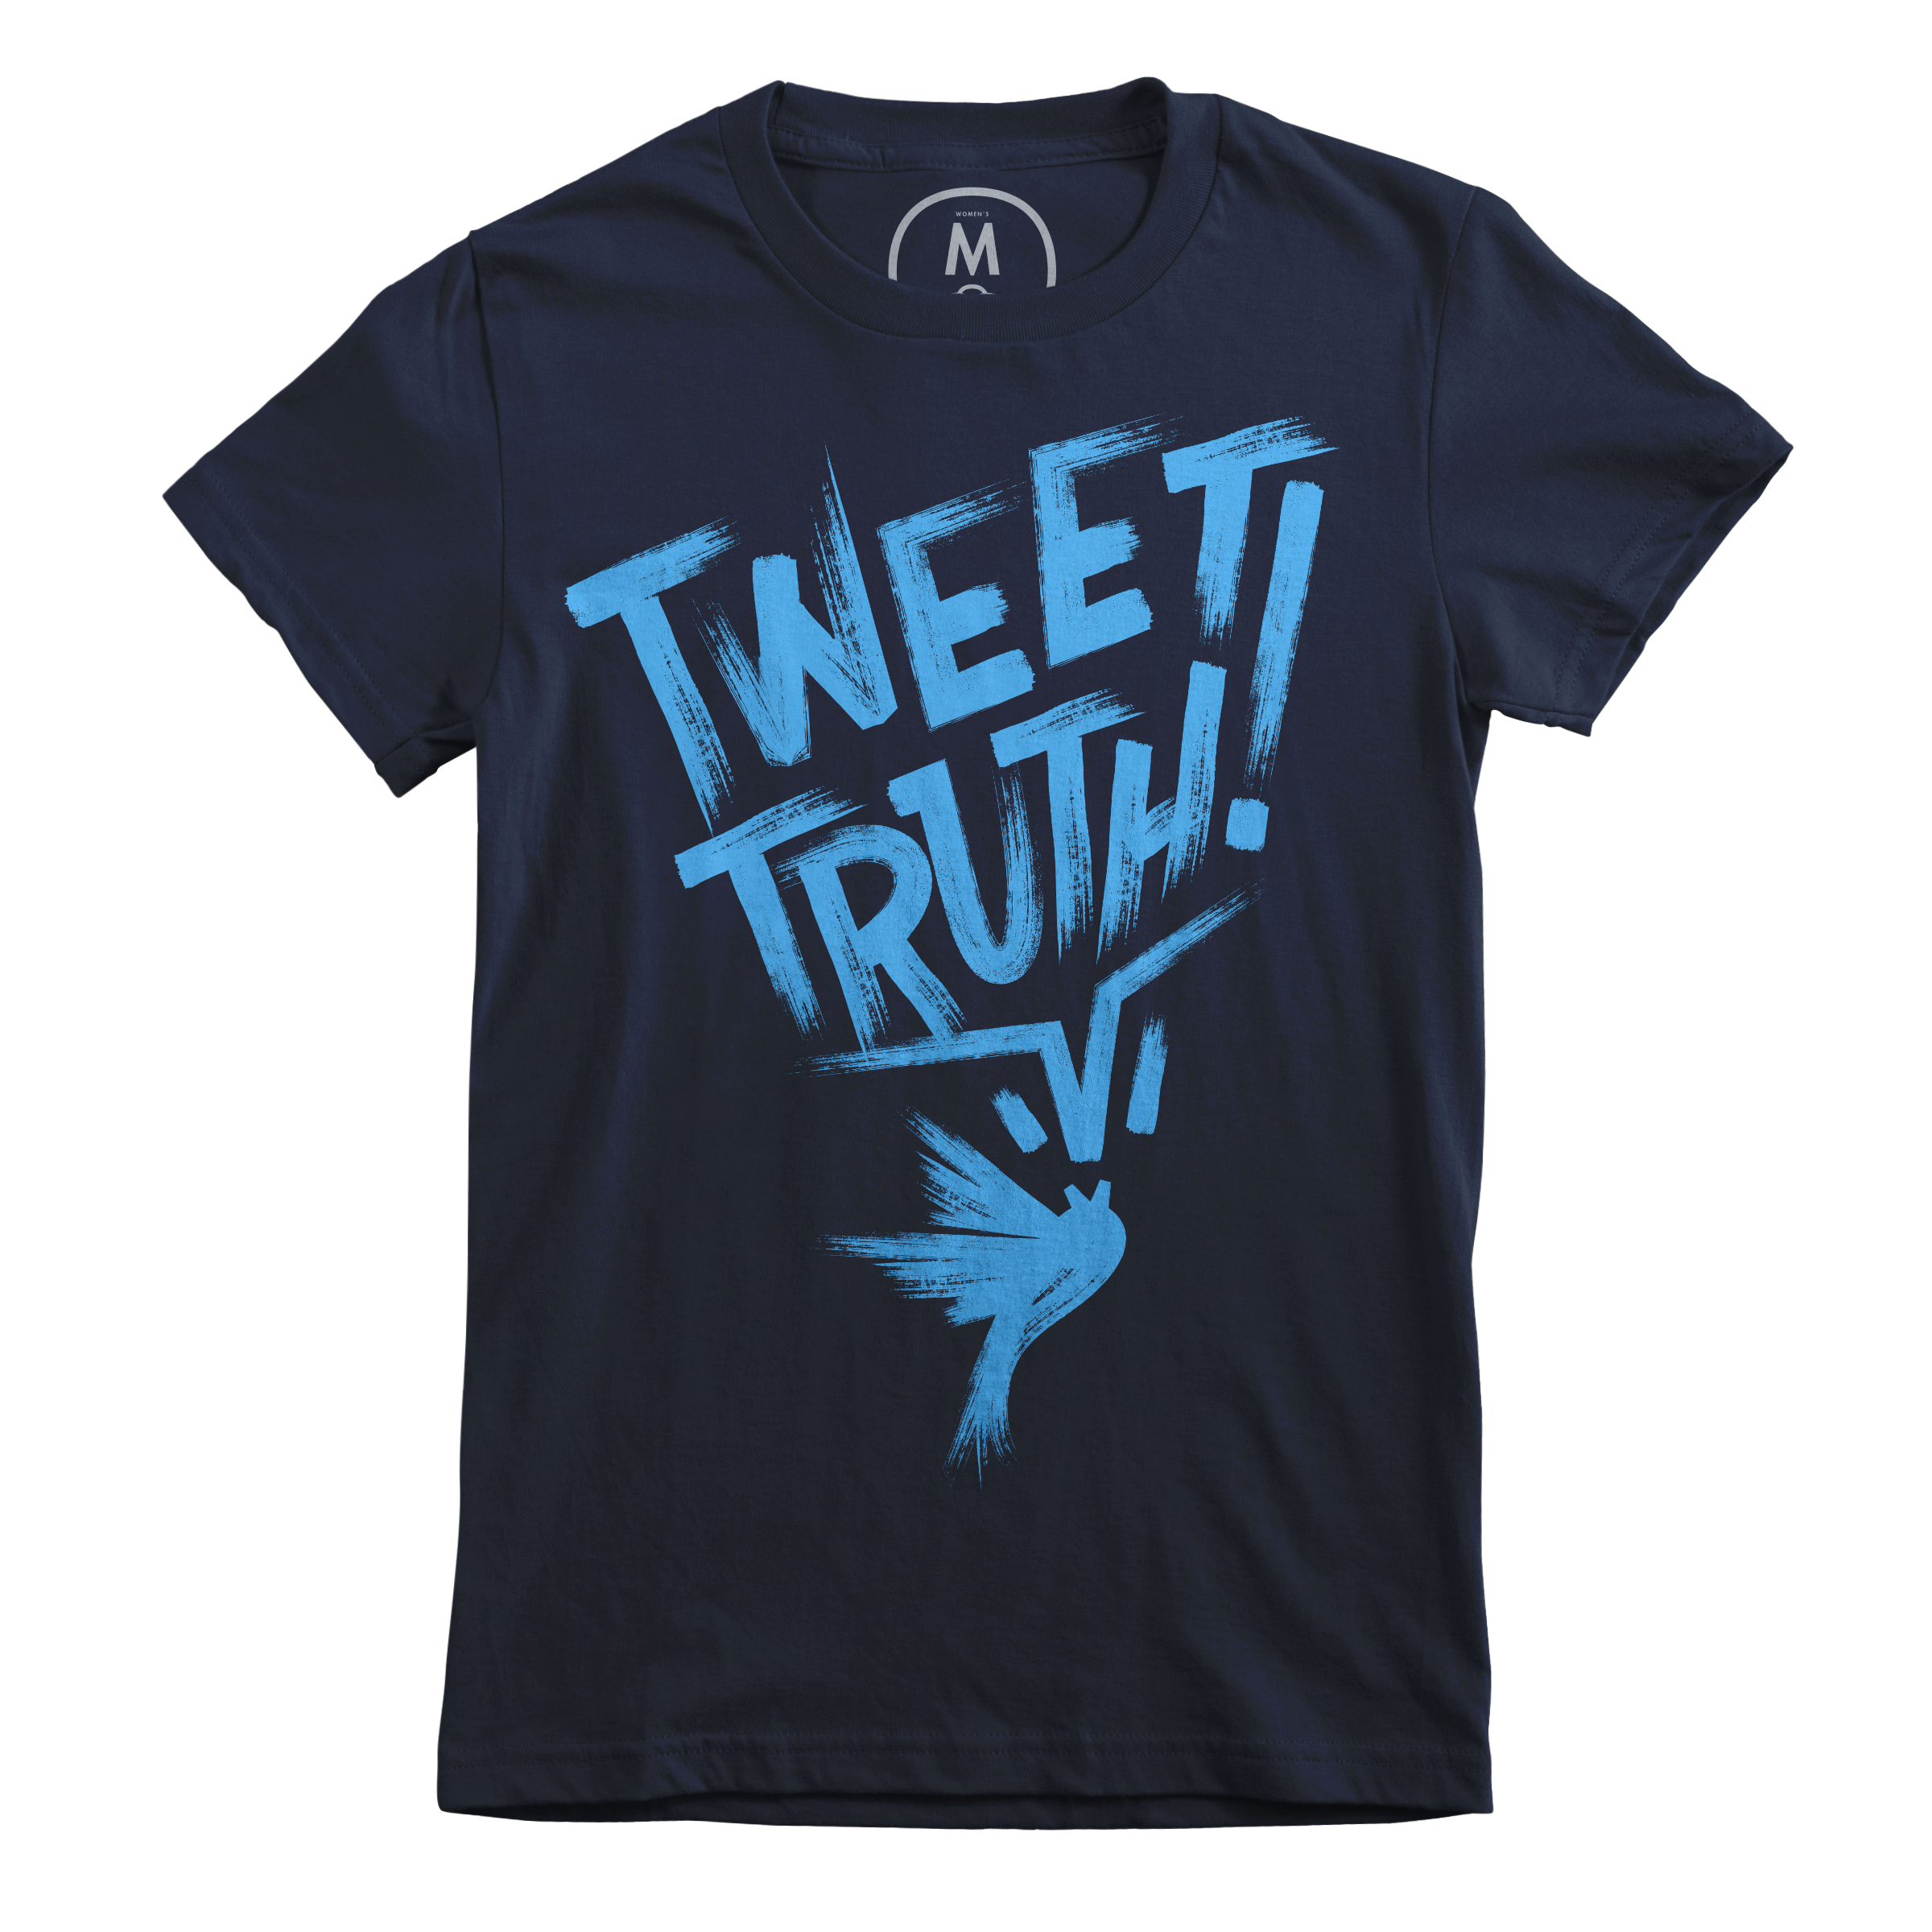 Tweet Truth! Midnight Navy (Women's)